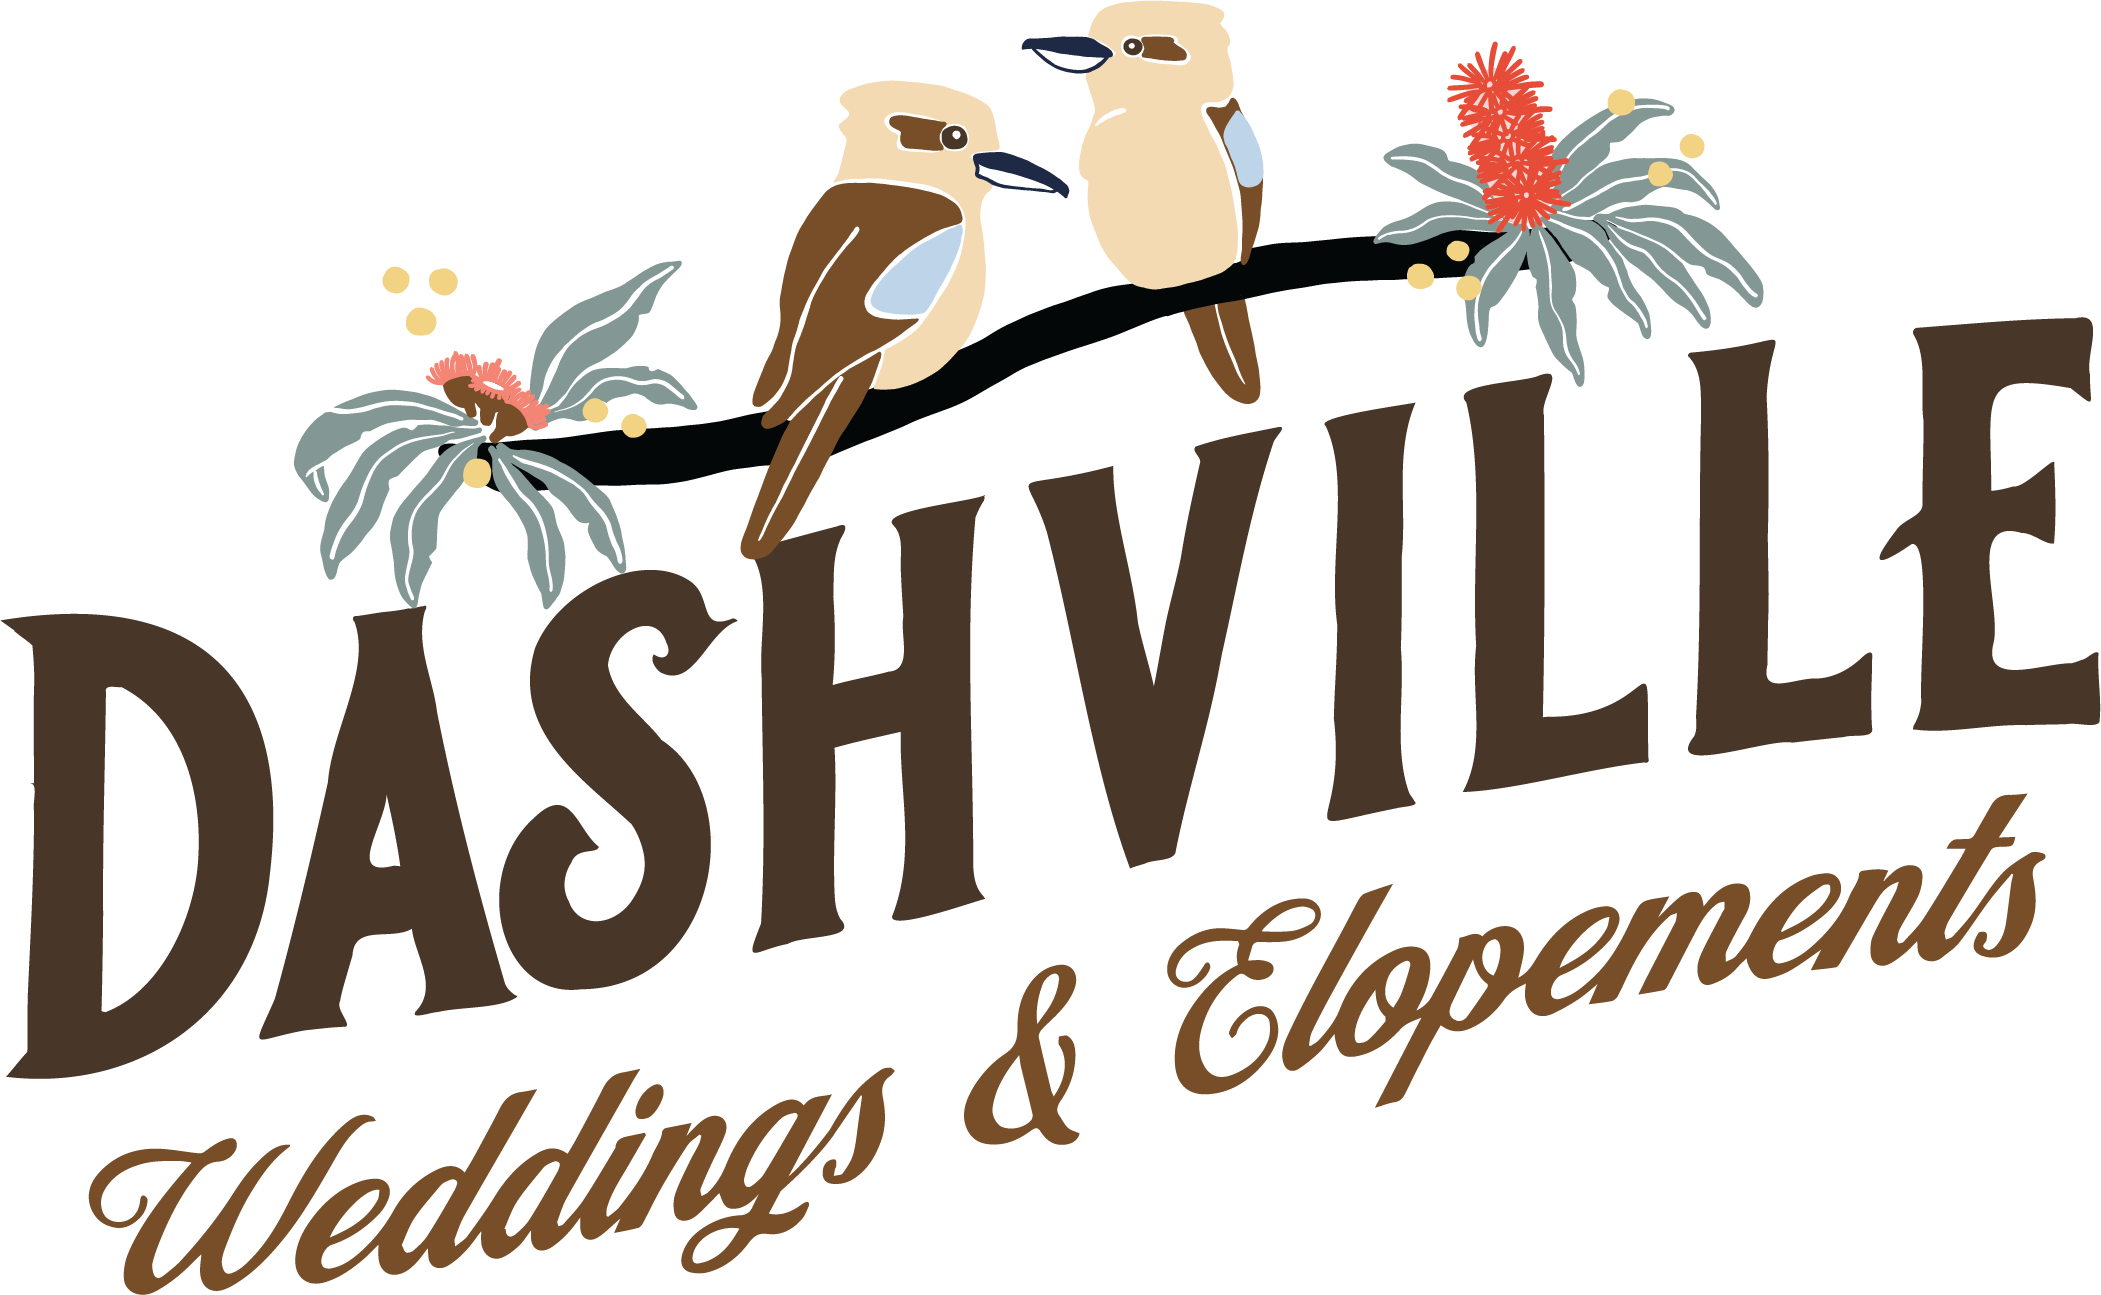 Dashville Weddings _ Elopements Primary Logo